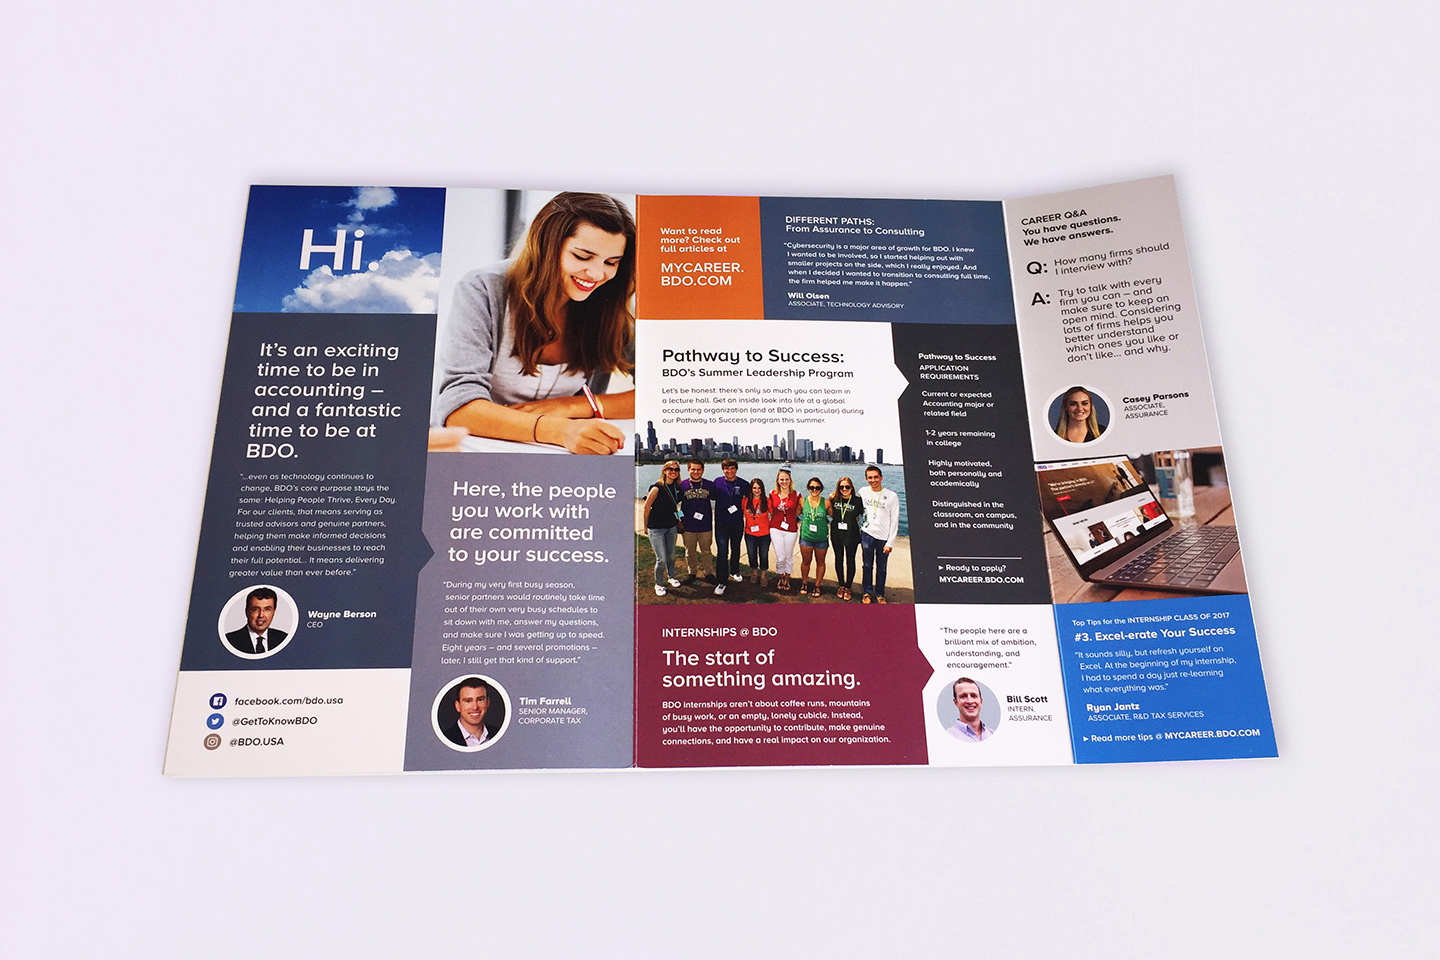 Marketing efforts to approach students include brochures, videos, social media, website design, event items.